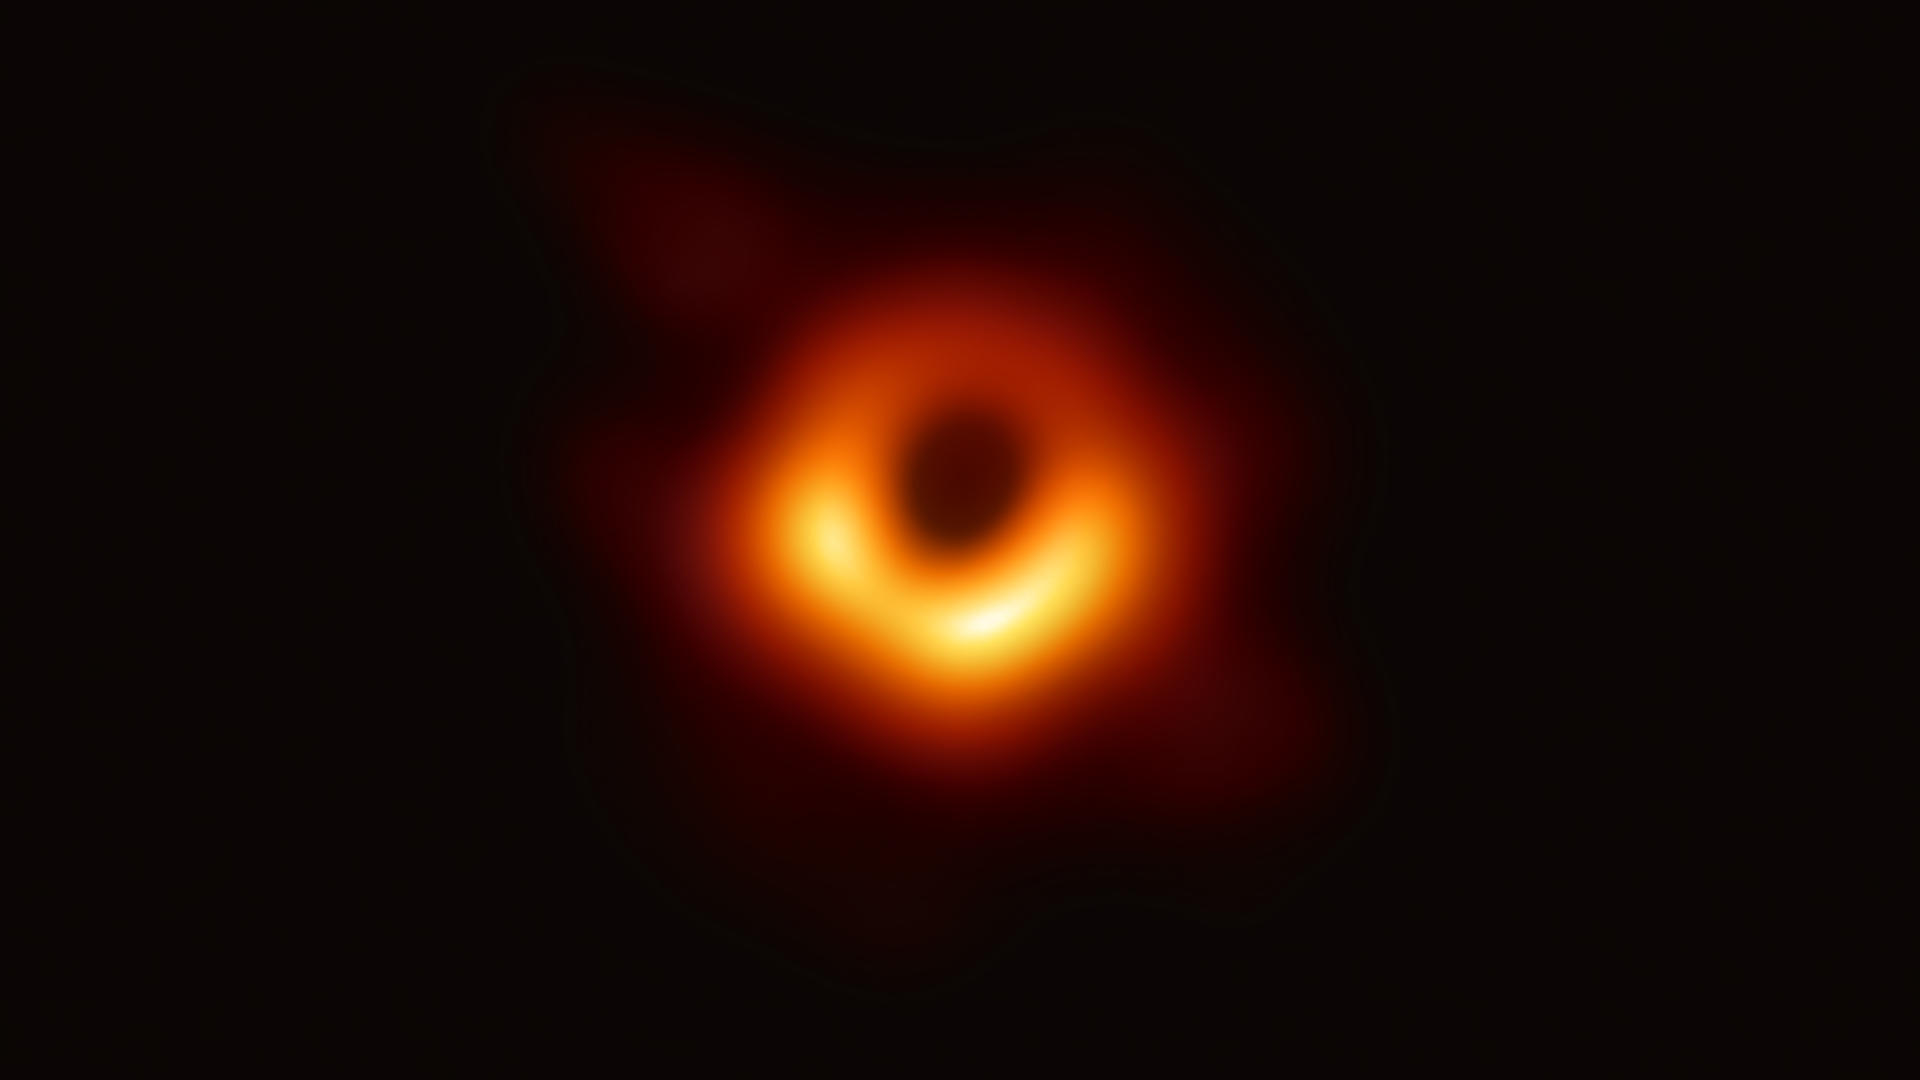 Black hole image, showing a red and orange circle of light before it has crossed the event horizon